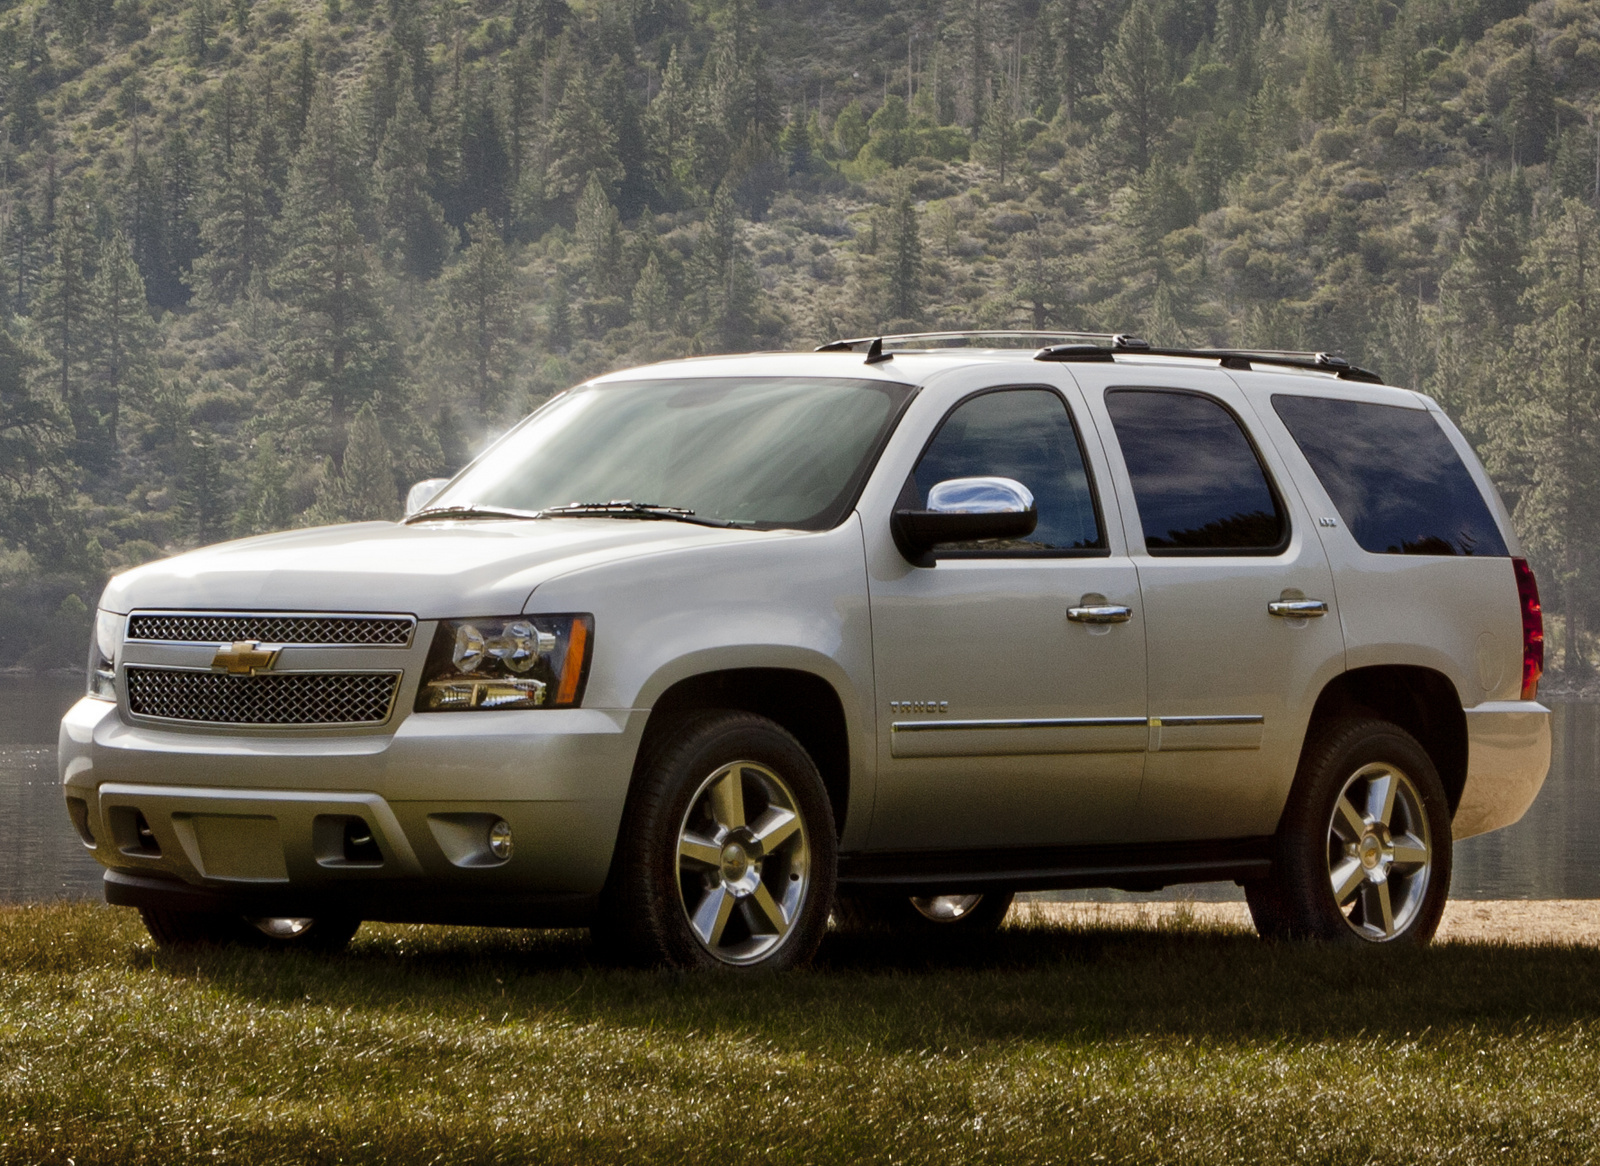 All Types tahoe pictures : 2014 Chevrolet Tahoe - Overview - CarGurus